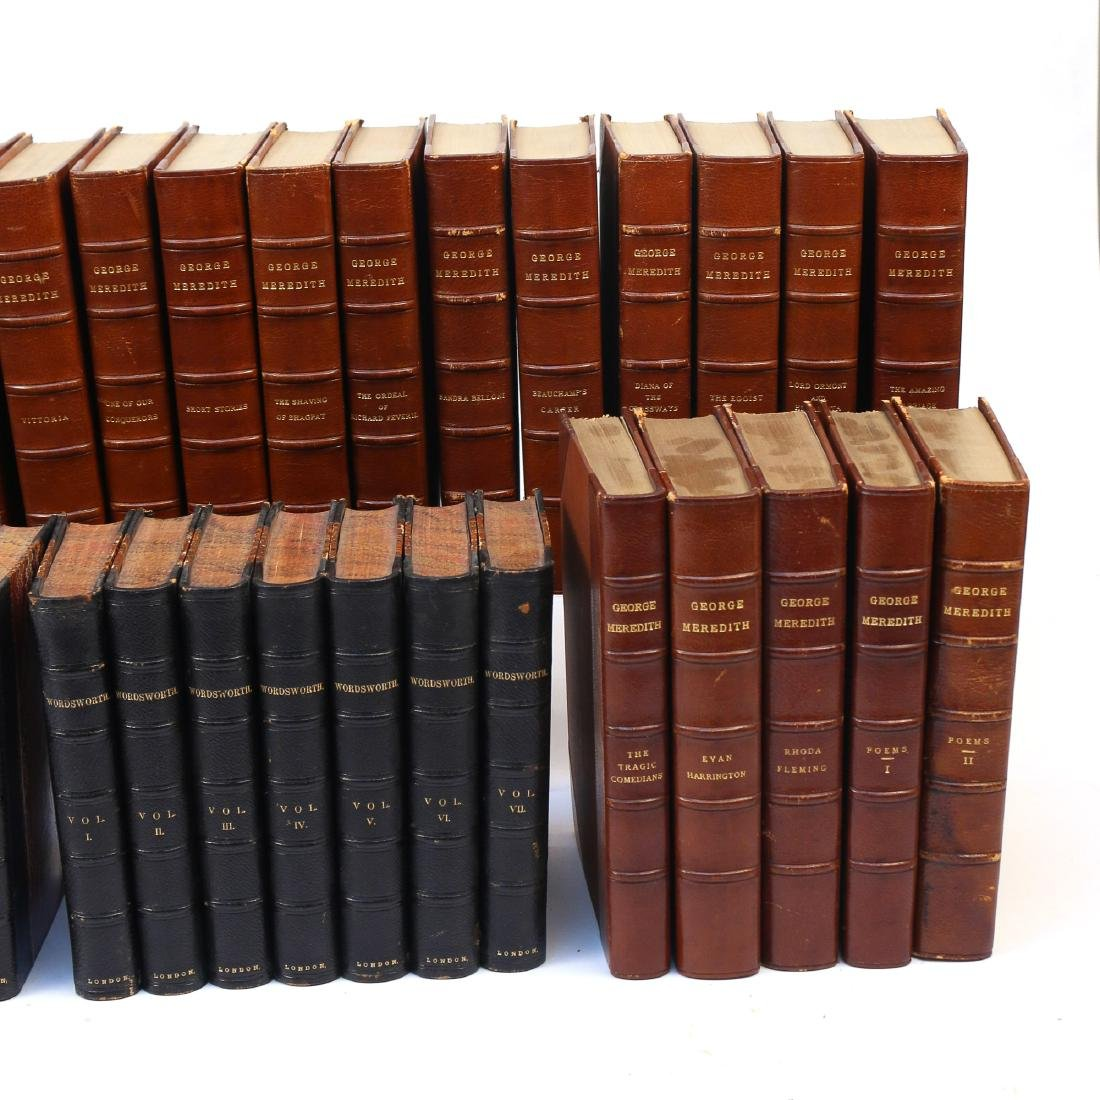 (53vol) [BINDINGS] MISC. LEATHER-BOUND BOOKS - 3